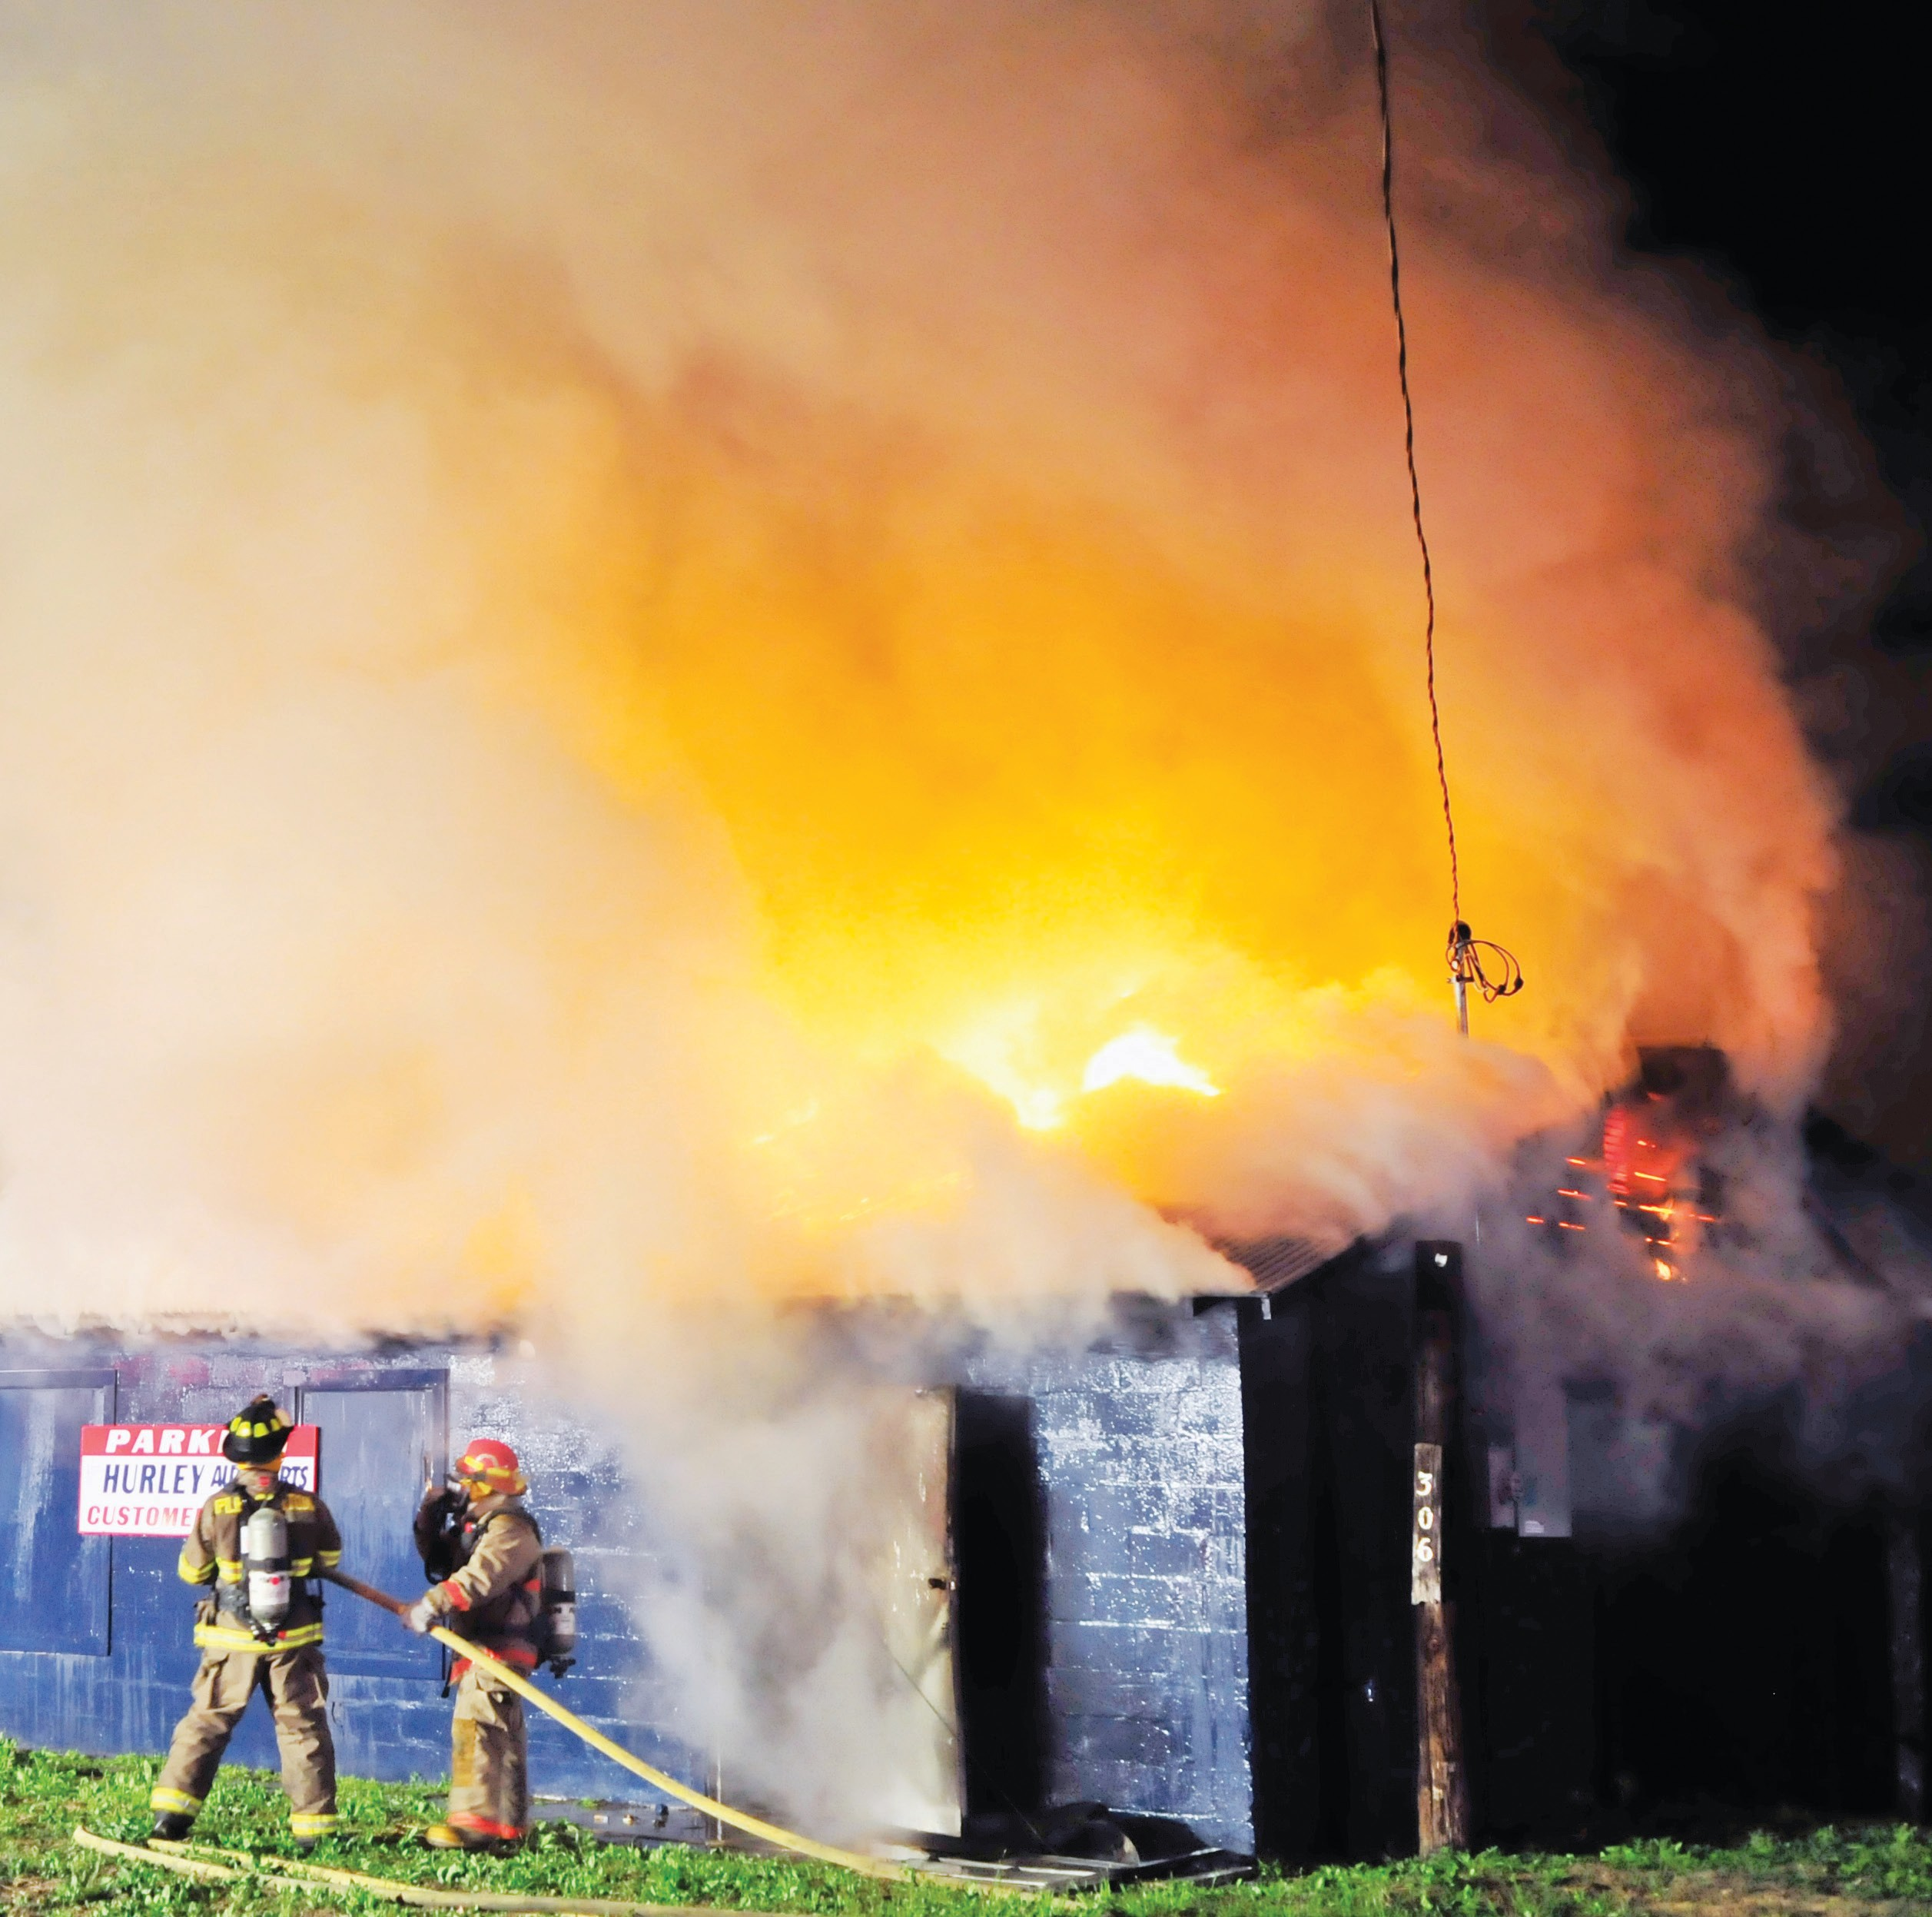 A warehouse holding parts for Hurley Auto Parts caught fire and burned on February 14 just before midnight. The fire is currently under investigation.